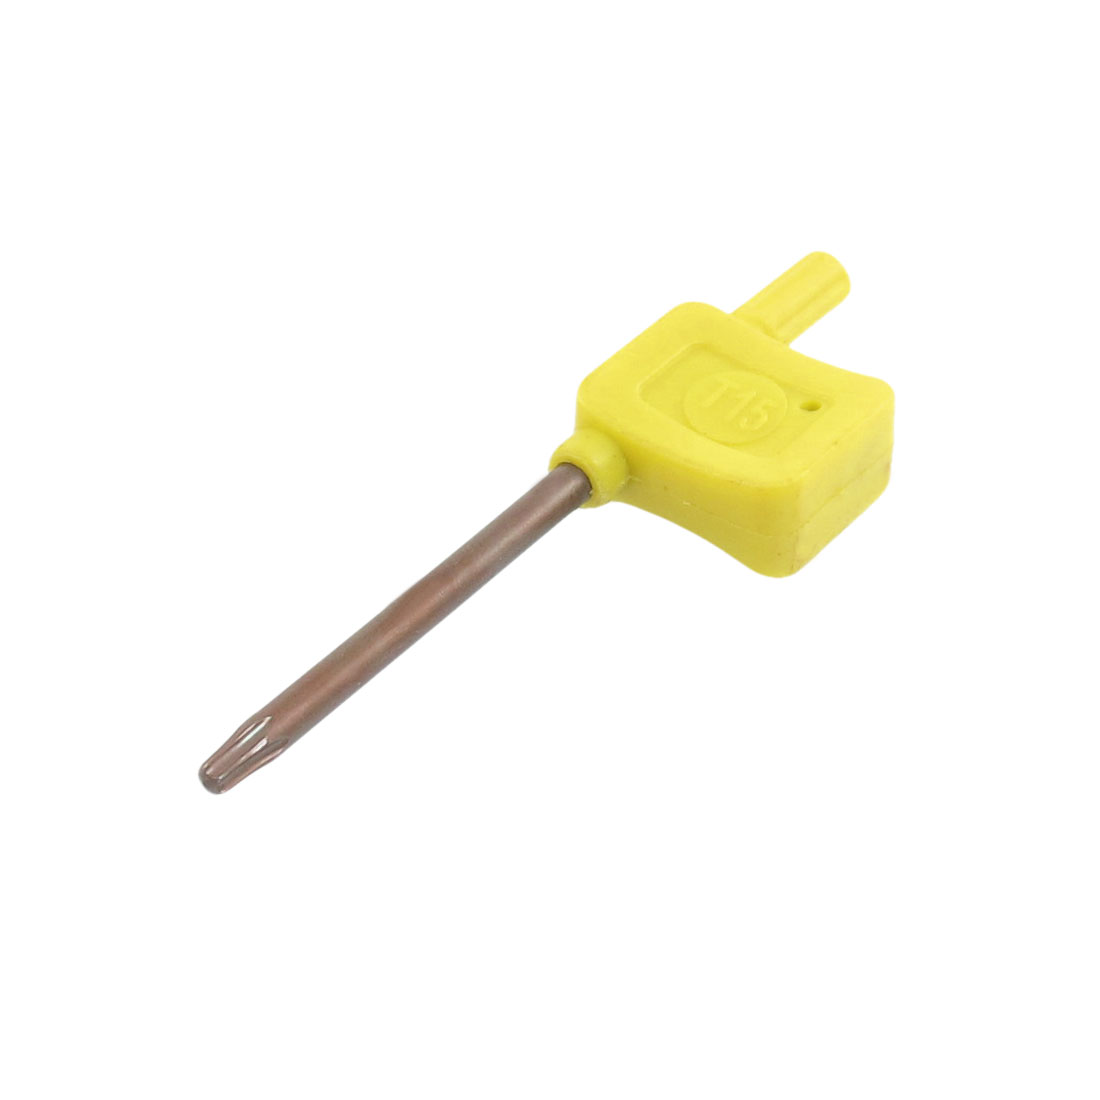 T15 Torx Nonslip Grip Yellow Flag Type Wrench Spanner